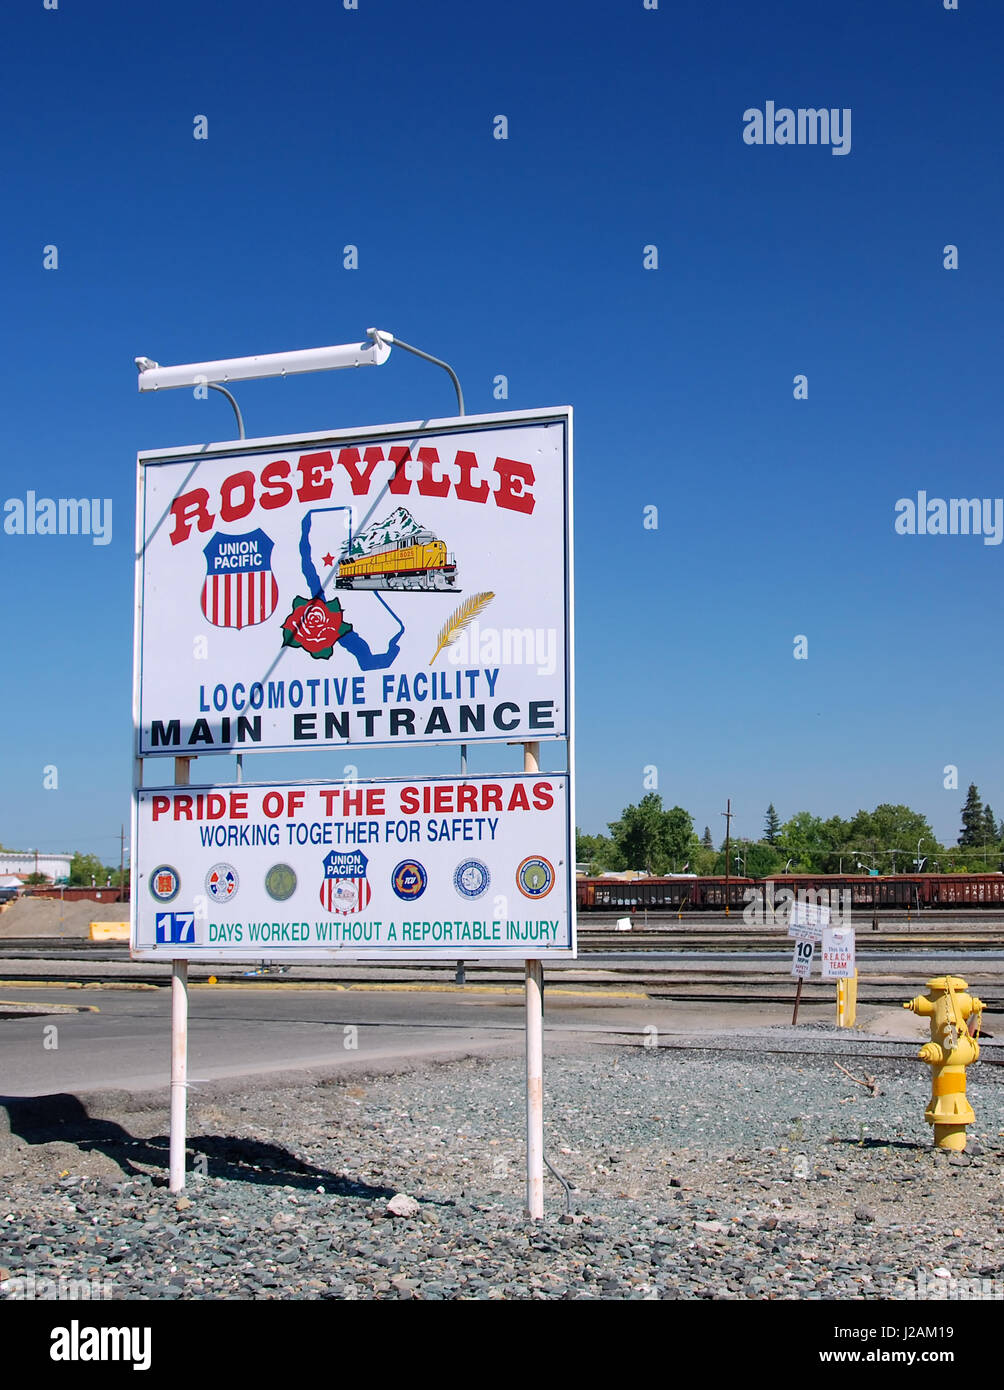 Union Pacific sign at Roseville, Placer County, California